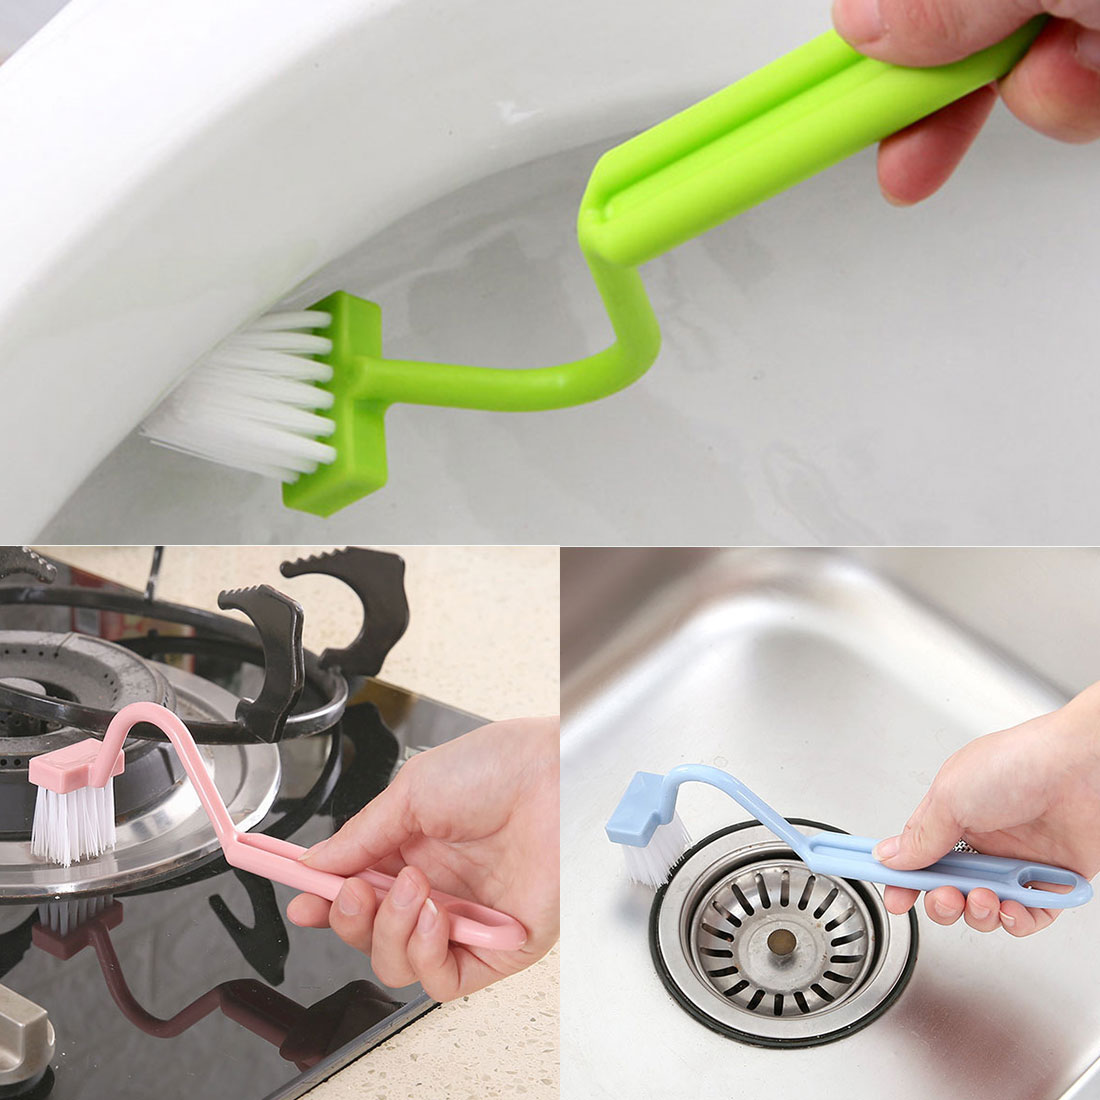 Curved portable toilet brush S-shaped toilet cleaning brush scrubber hot sale 2018 product cleaning brush 1pcs cleaning side image